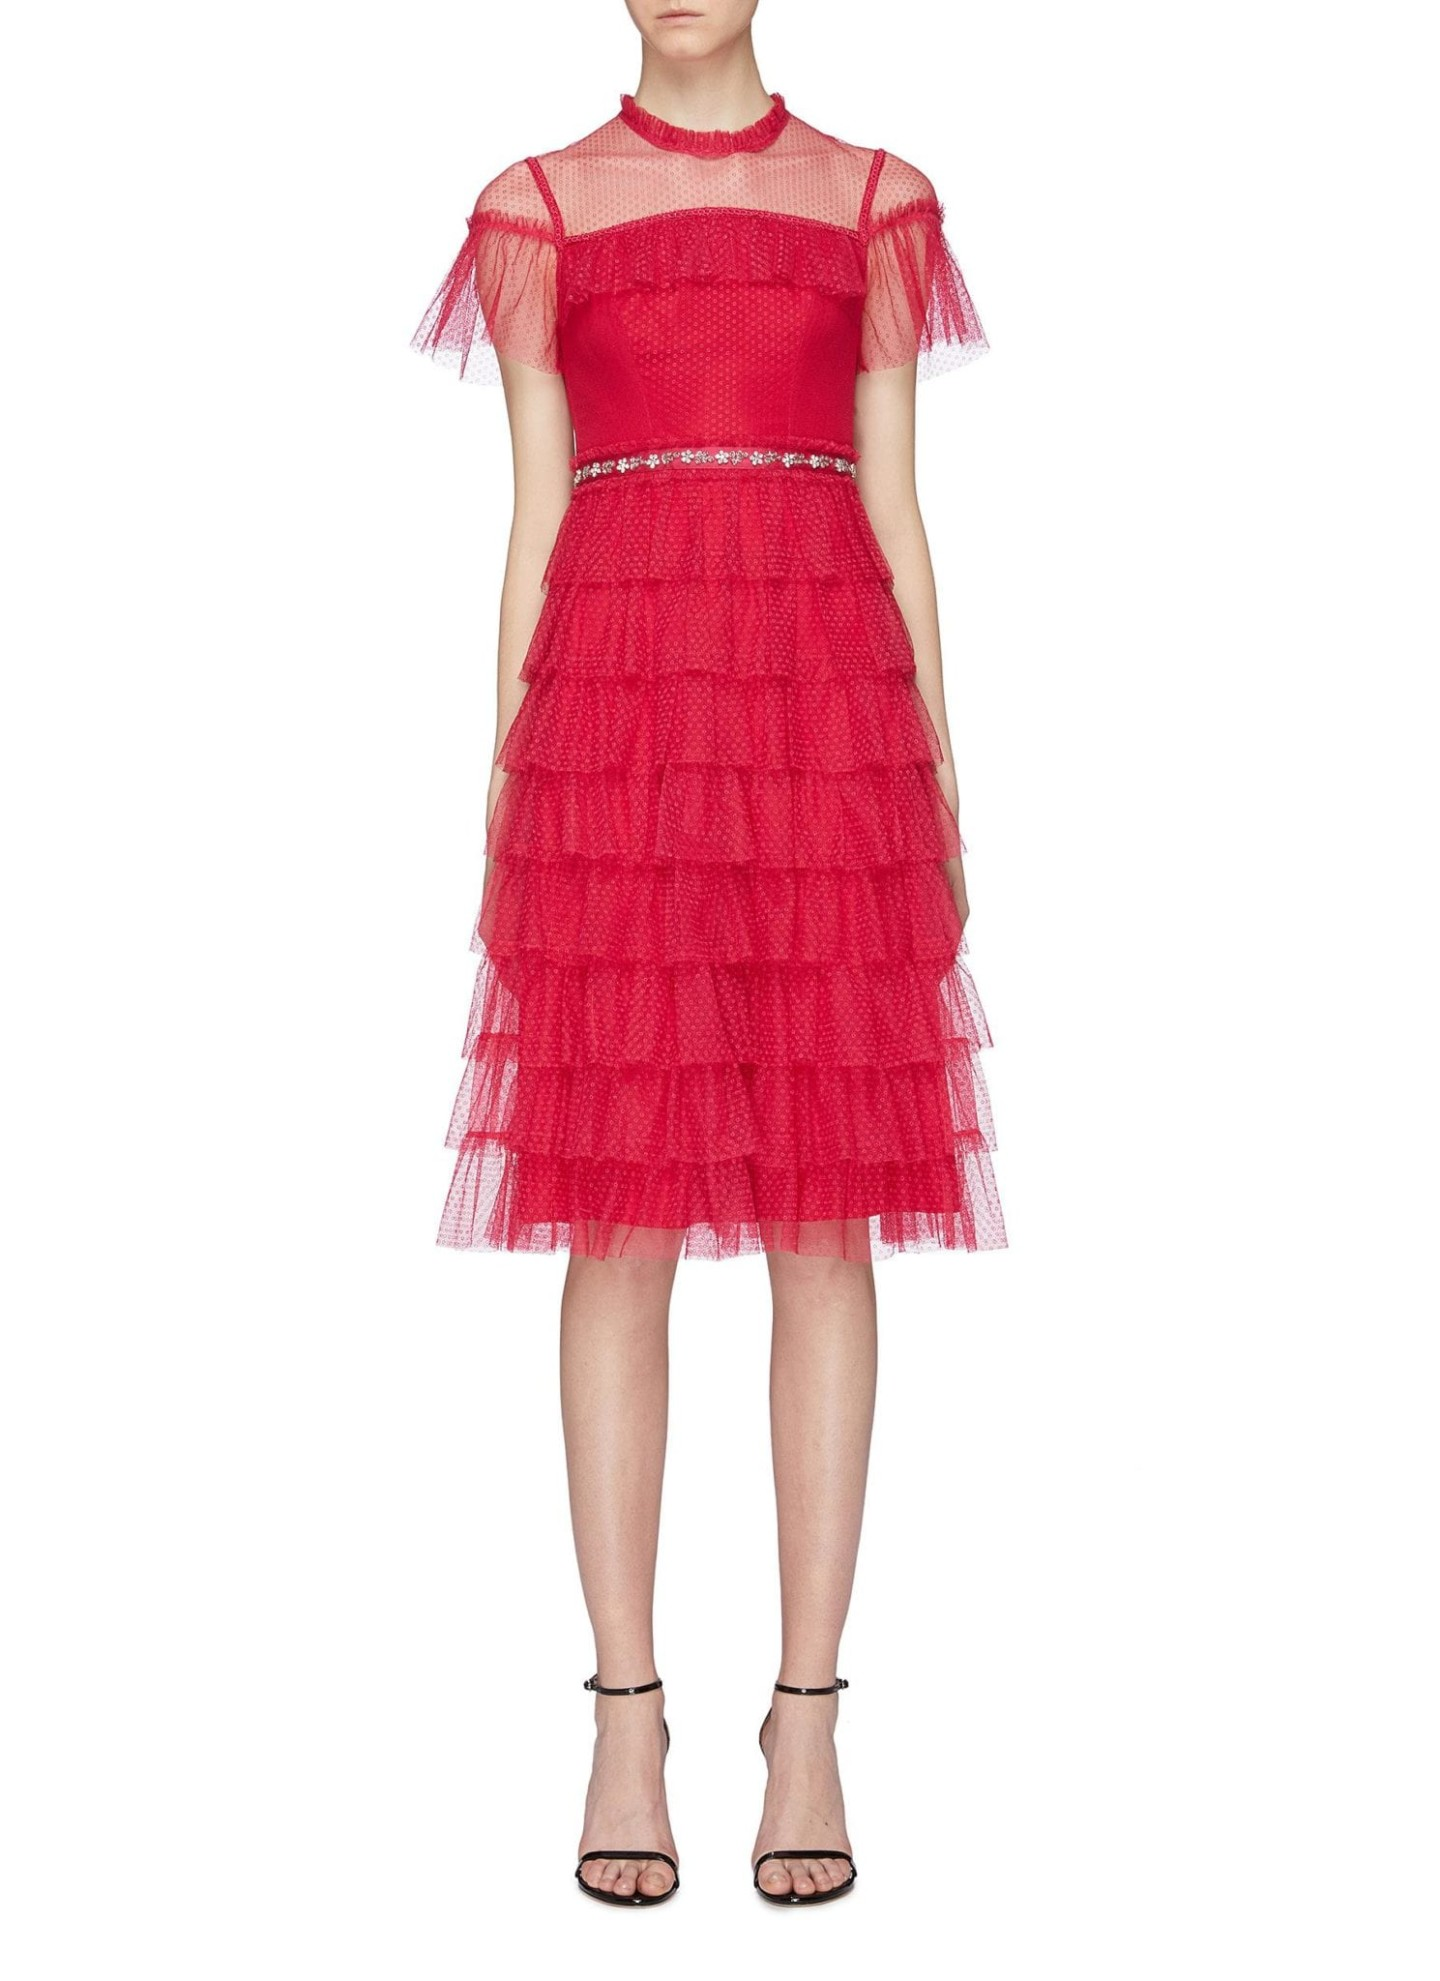 NEEDLE & THREAD 'Dotted' Embellished Waist Ruffle Tiered Tulle Red Dress